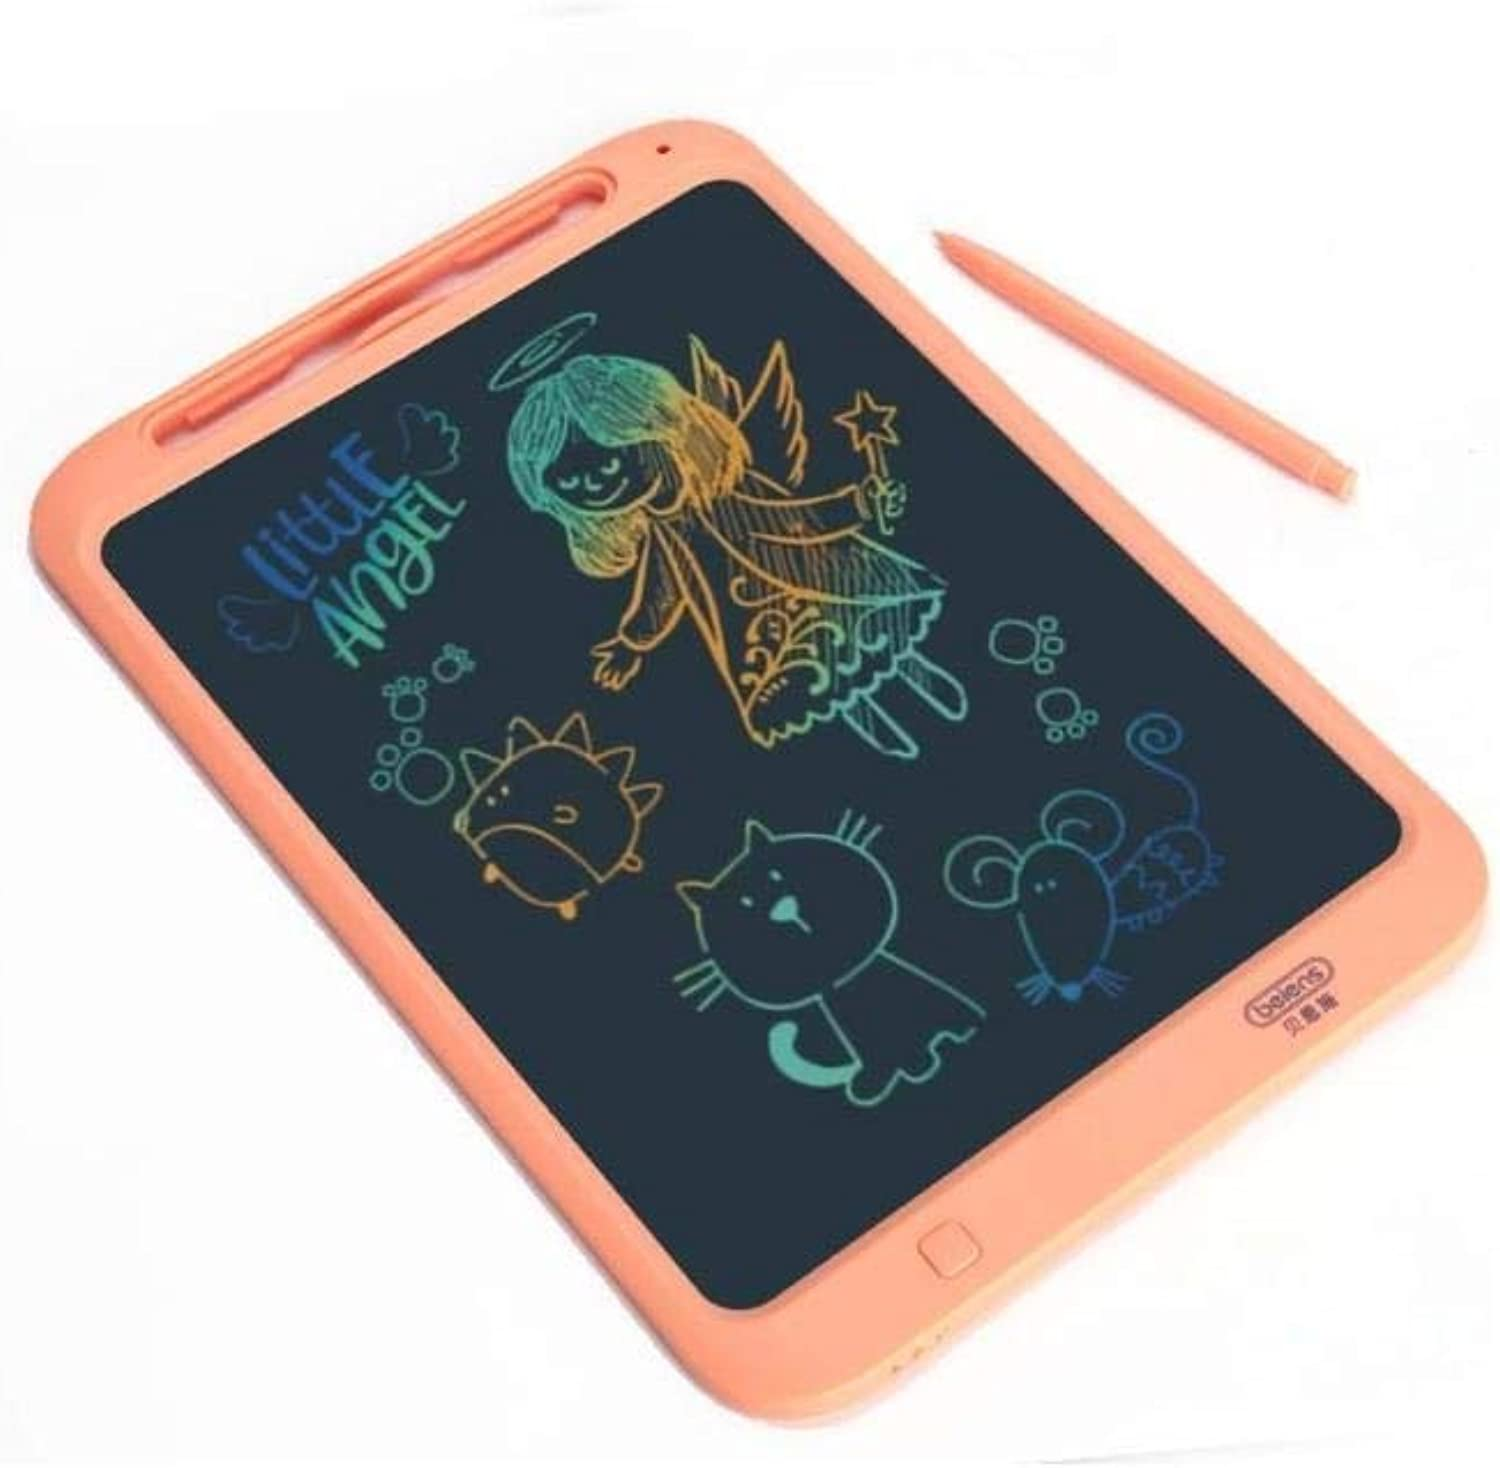 Aerth Smart LCD Sketchpad, Graffiti Painting Small Blackboard, Electronic Draft Puzzle Tablet, bluee, orange (color   orange)